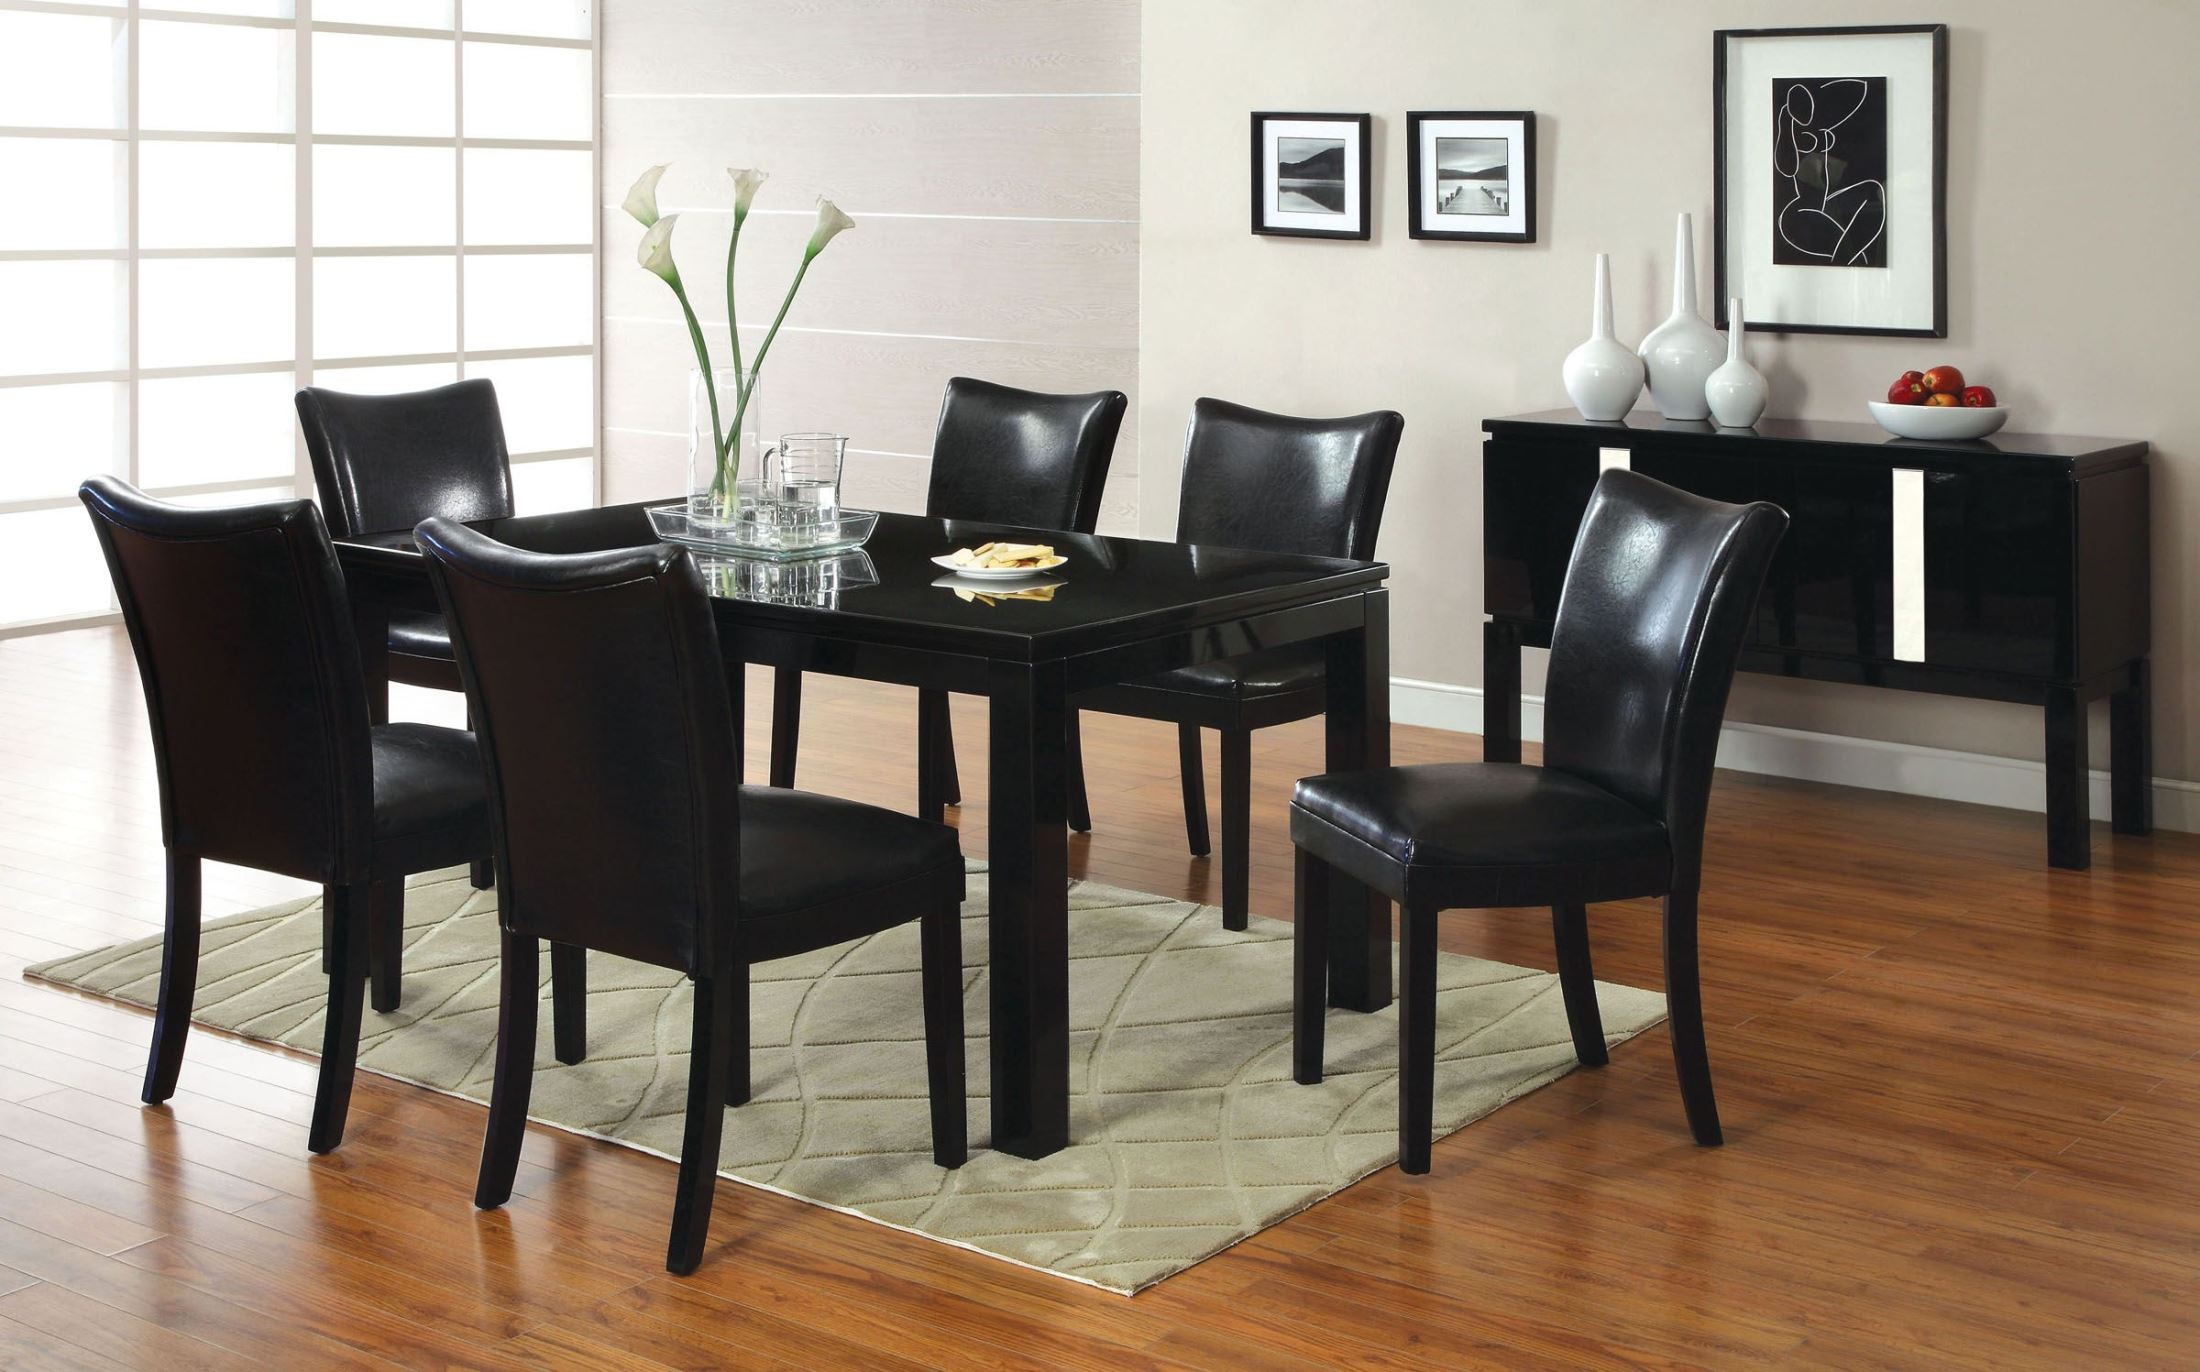 Lamia i black high gloss rectangular leg dining room set for Black front room furniture